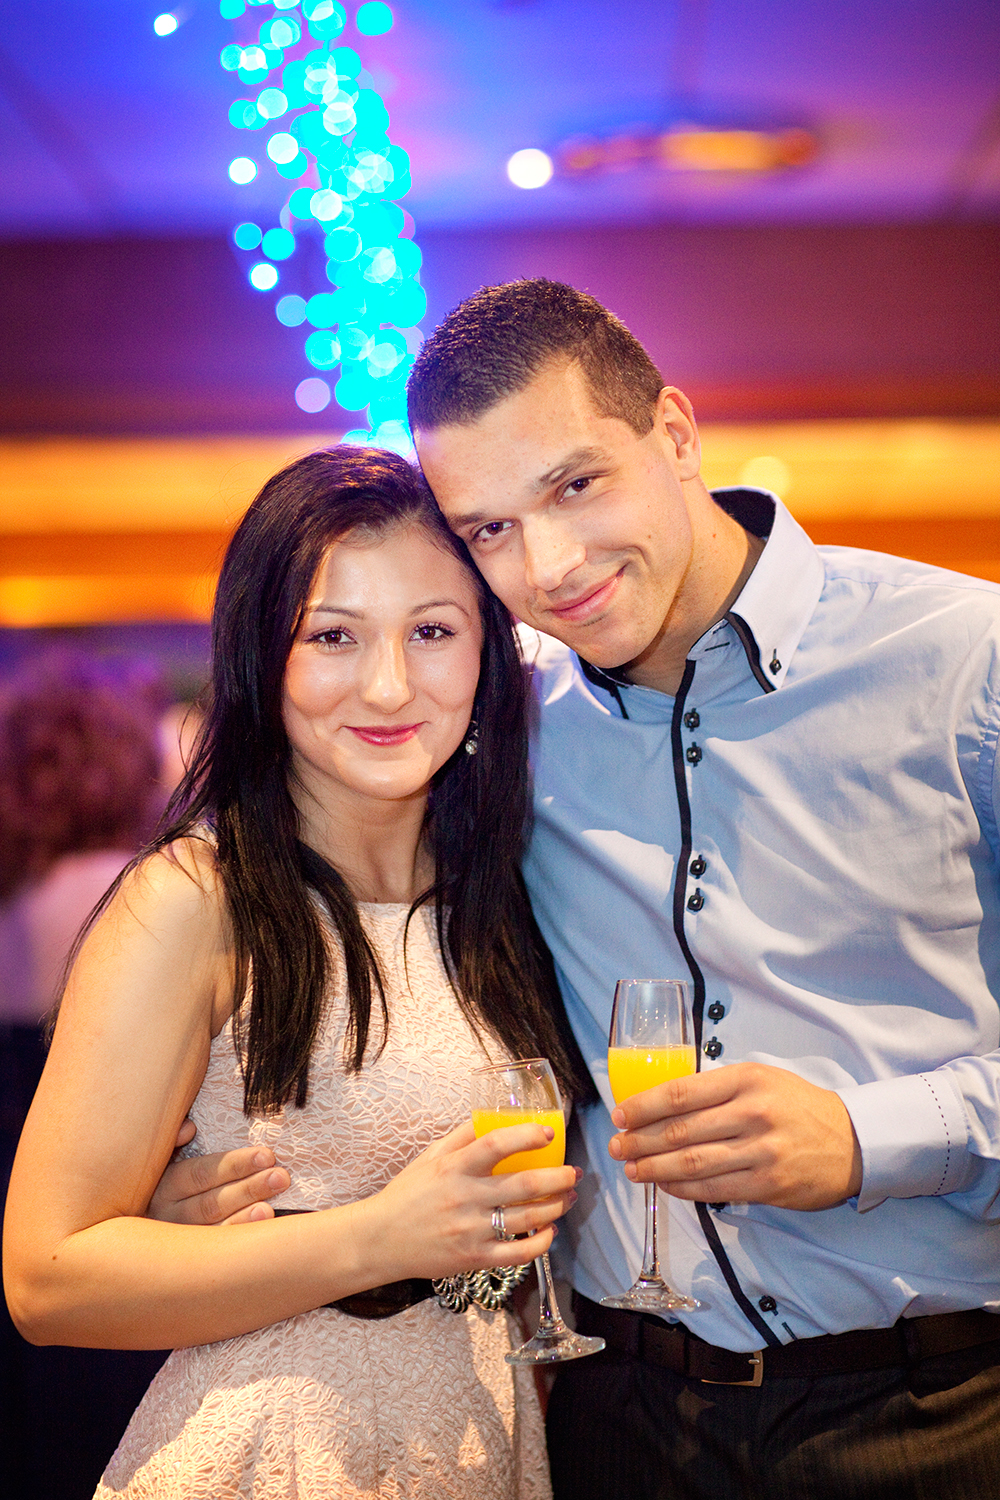 corporate party photography.jpg